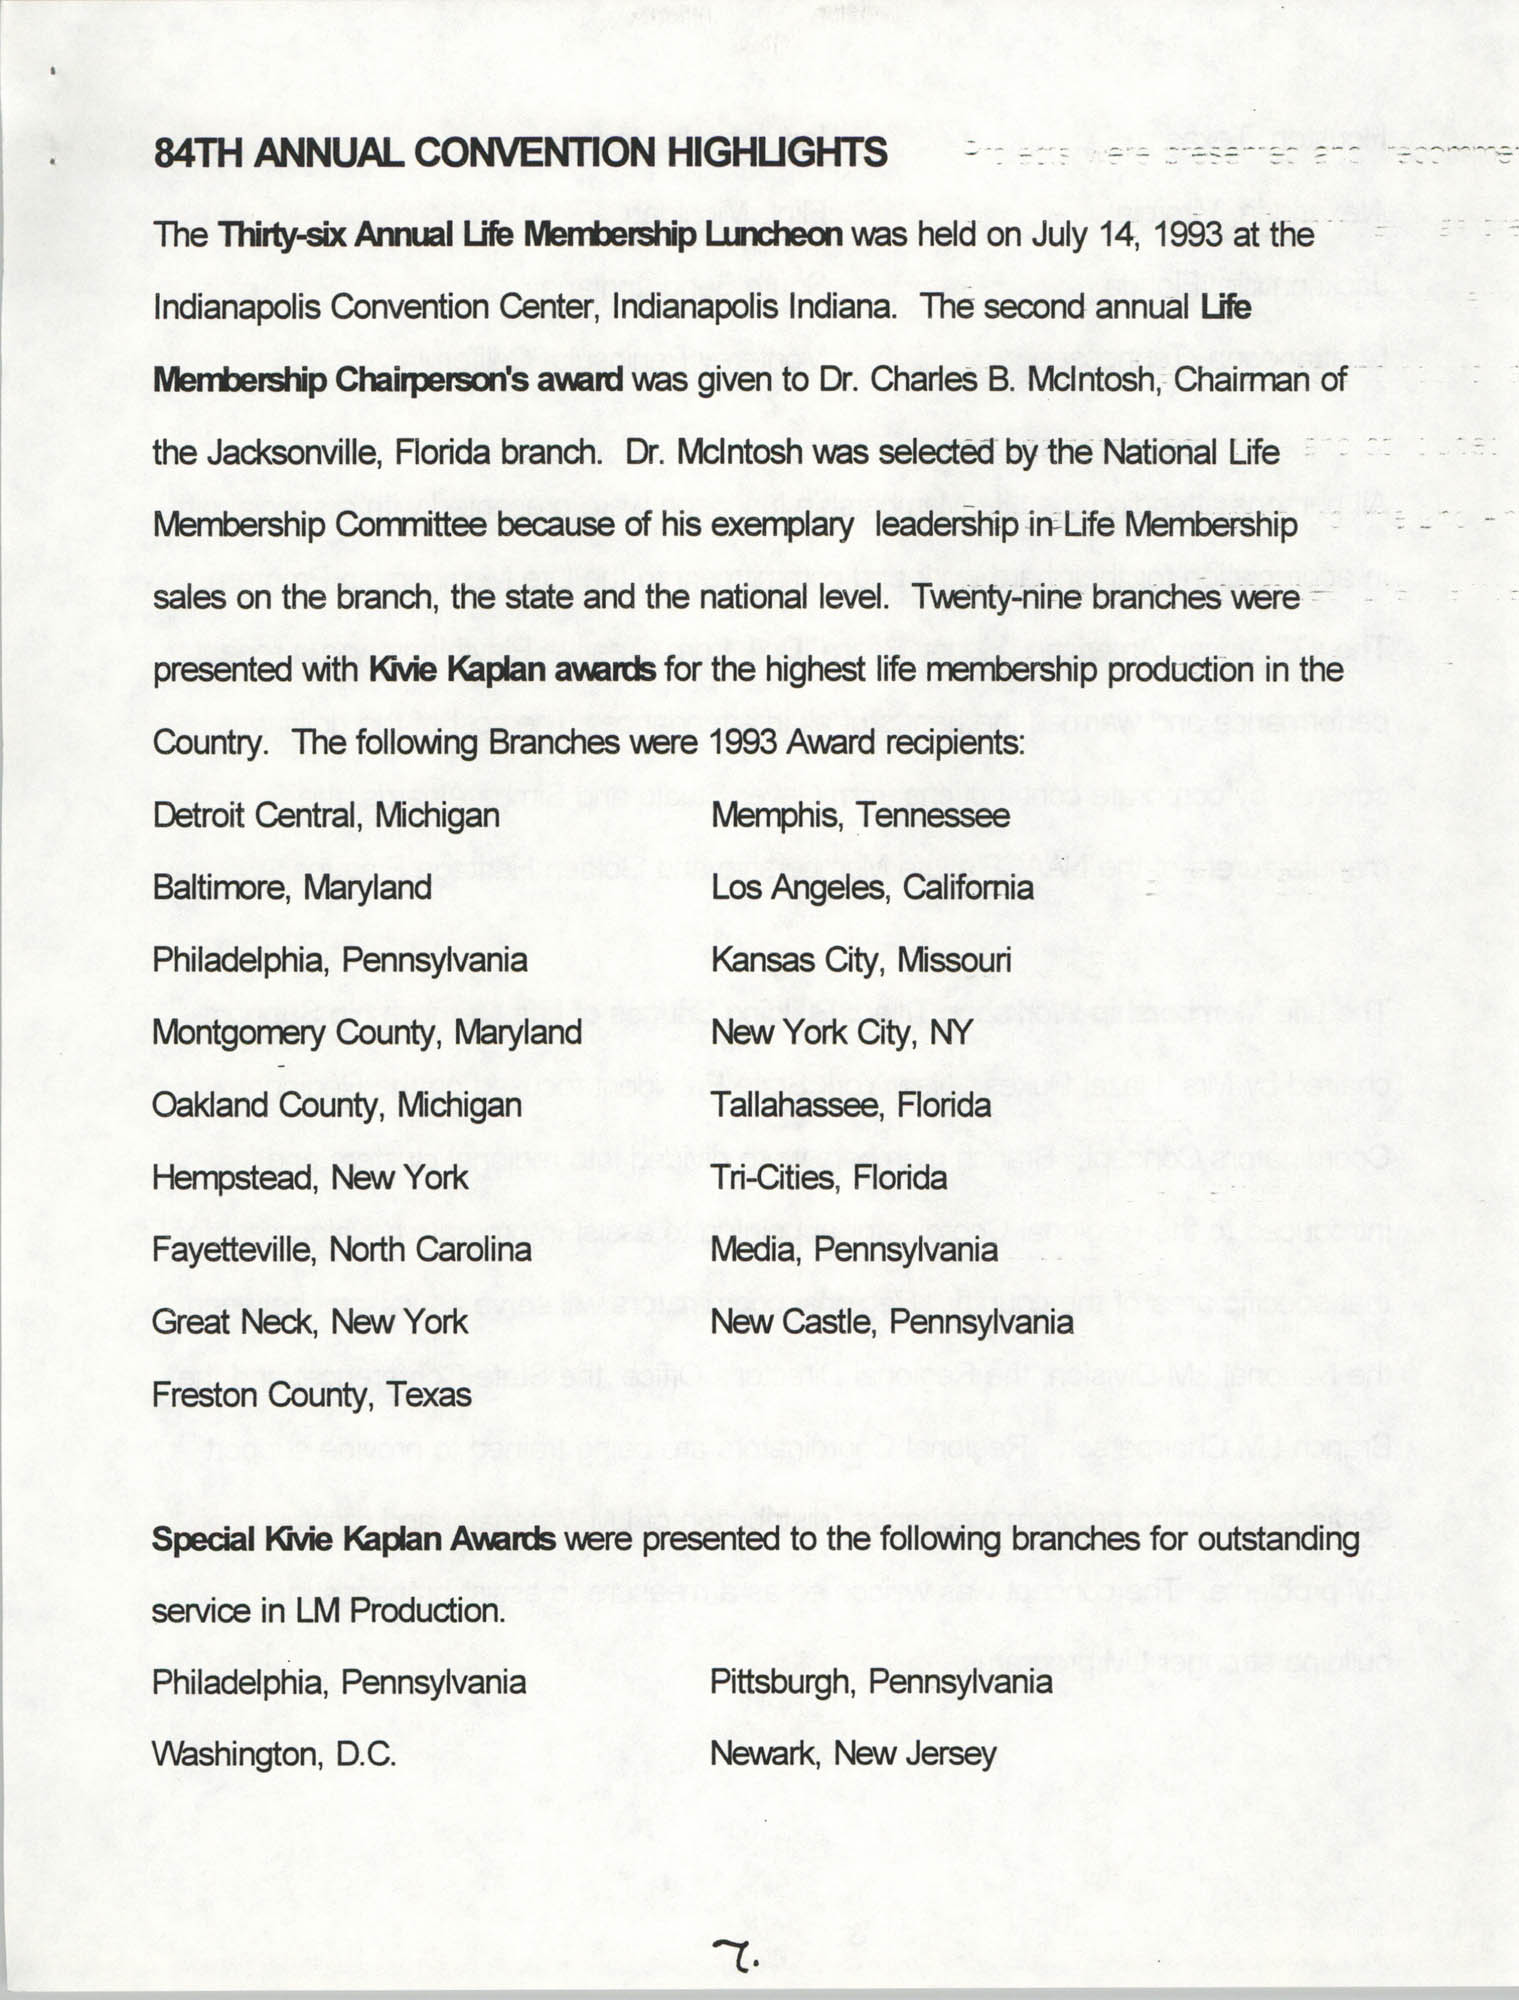 Life Membership Division, 1993 Annual Report, Page 7